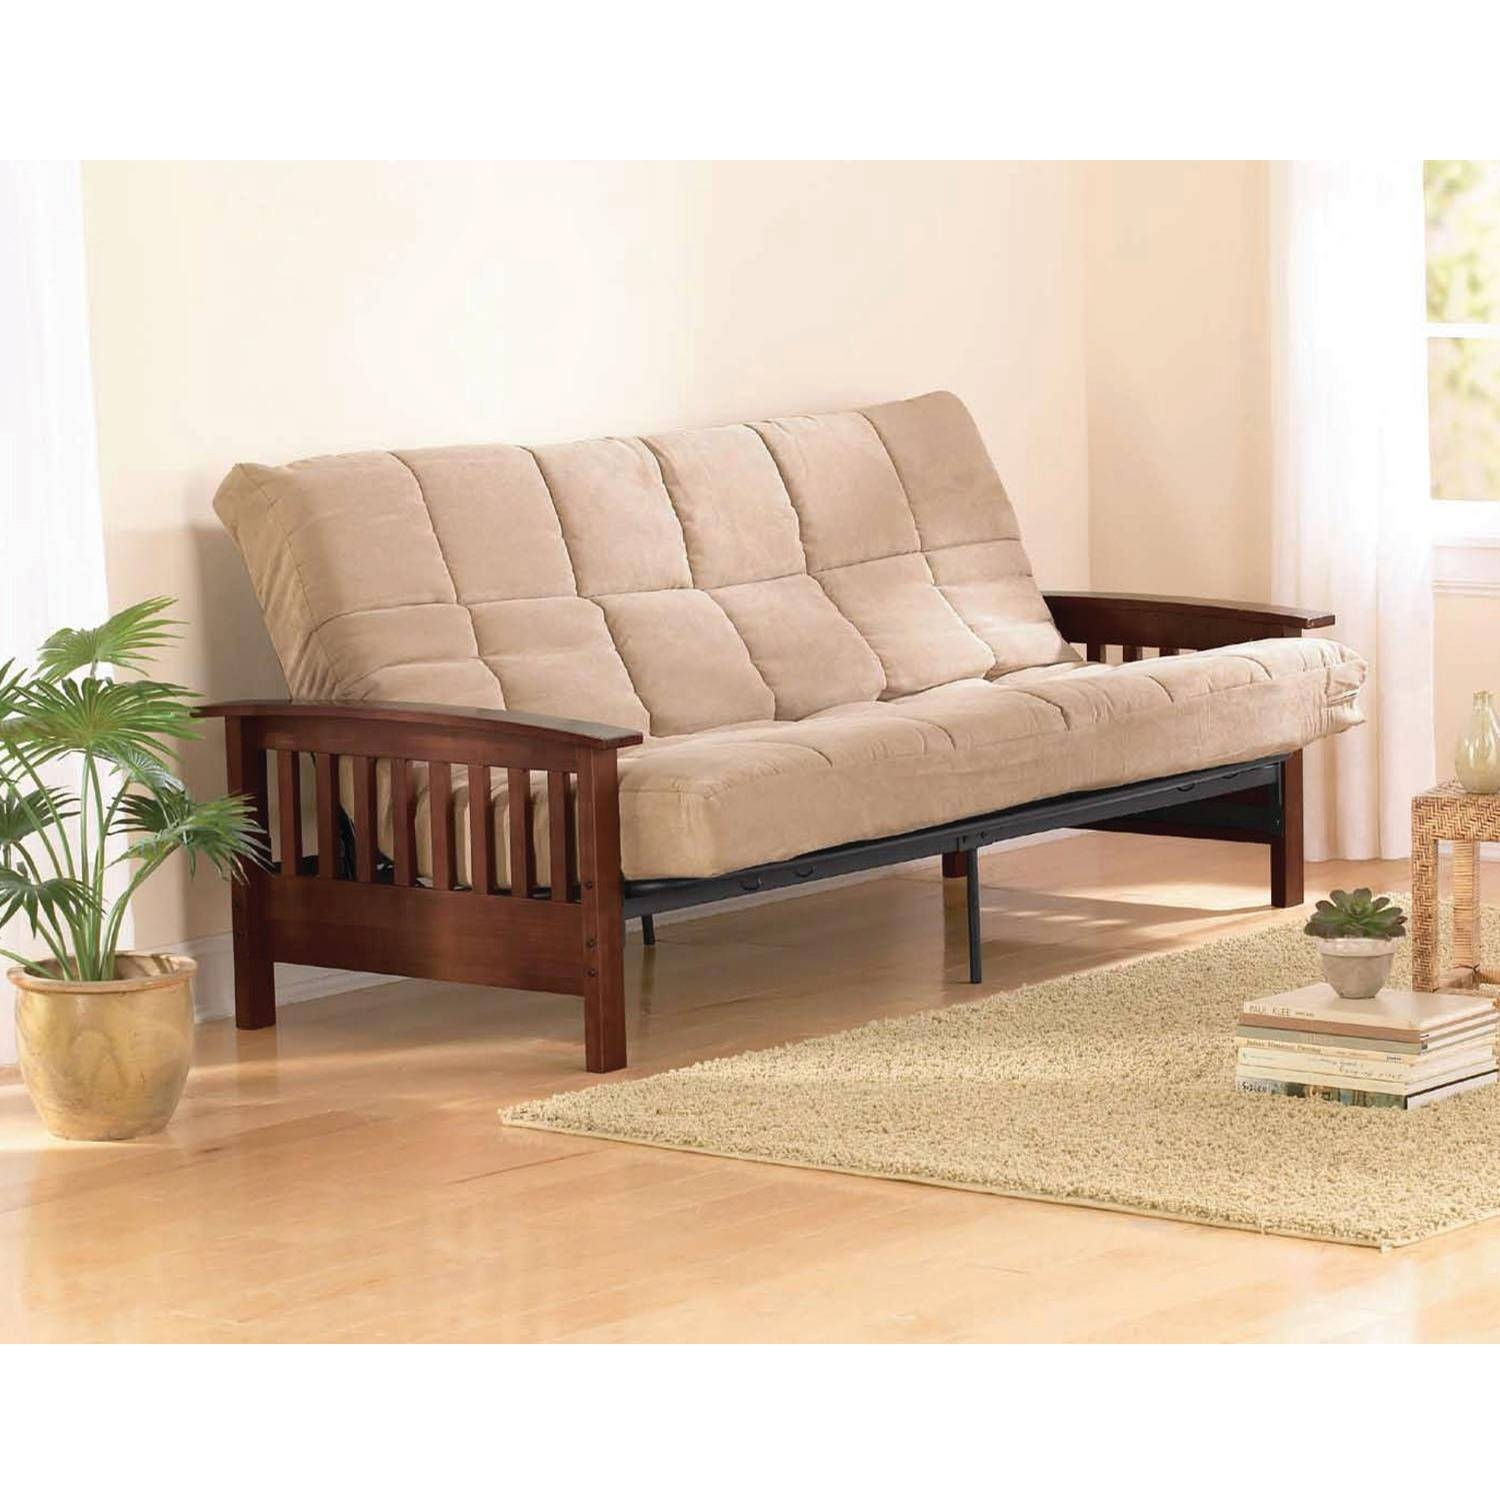 Inspirations: Sleeper Sofa Walmart   Walmart Futon Bed   Sofa Beds Intended For Futon Couch Beds (View 10 of 15)